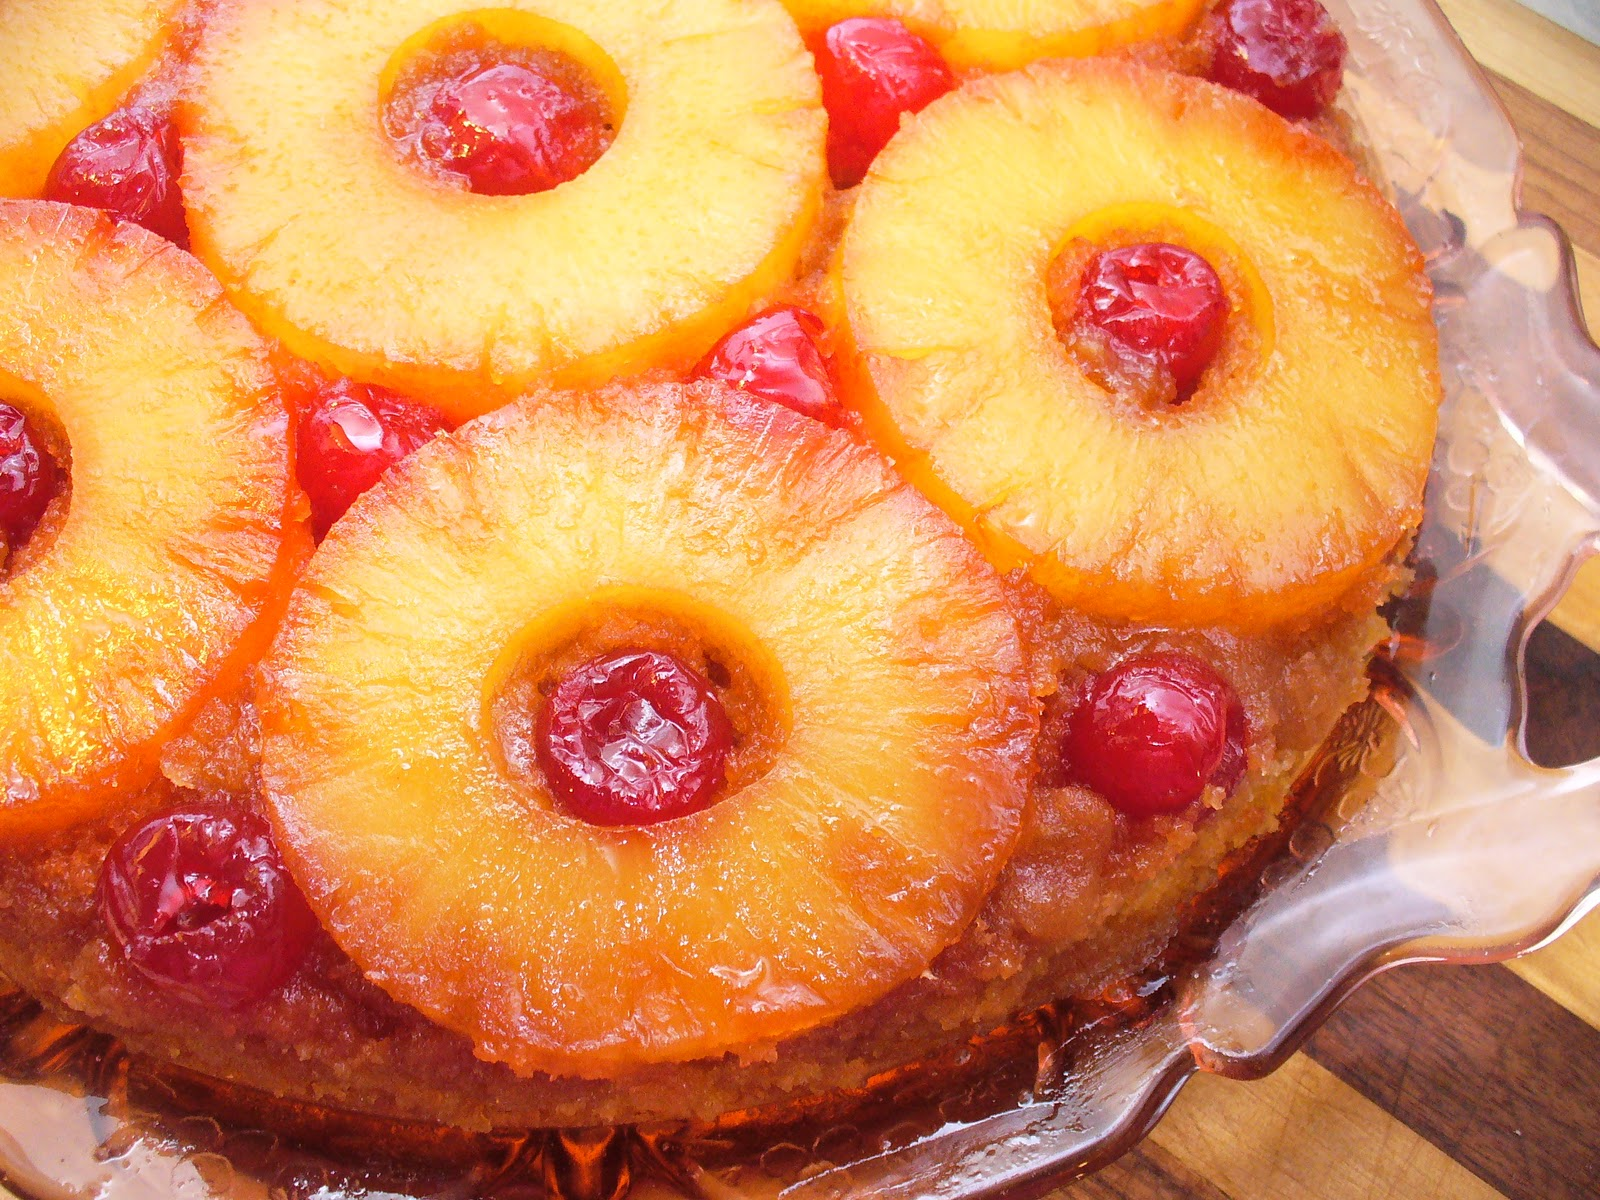 Leenee's Sweetest Delights: Pineapple Upside-Down Cake